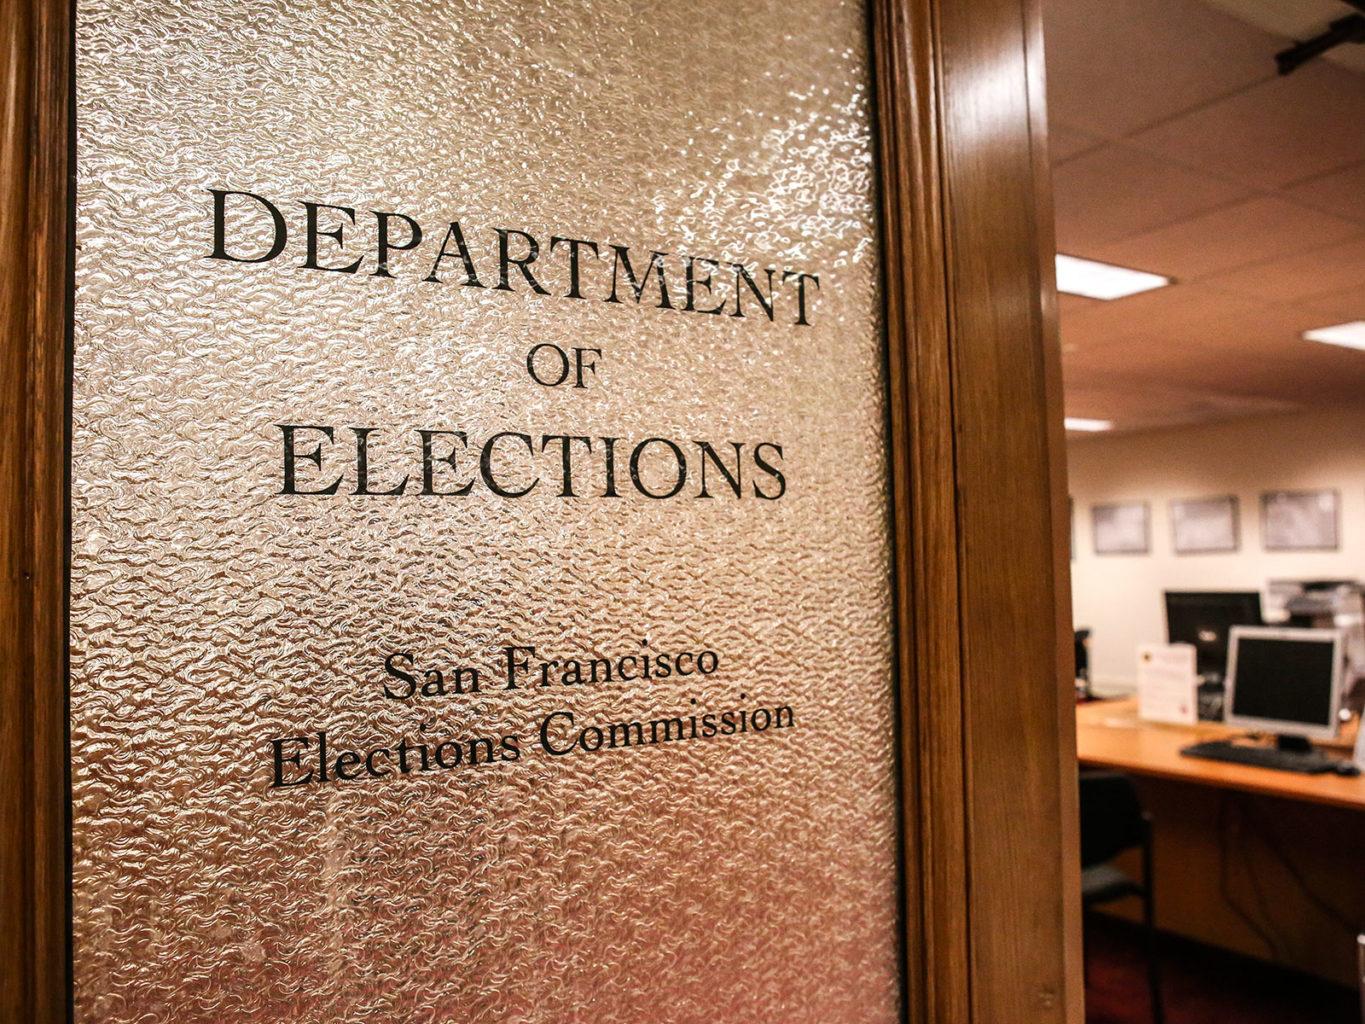 The Department of Elections inside City Hall in San Francisco is seen Jan. 31. (Mira Laing/Special to S.F. Examiner)